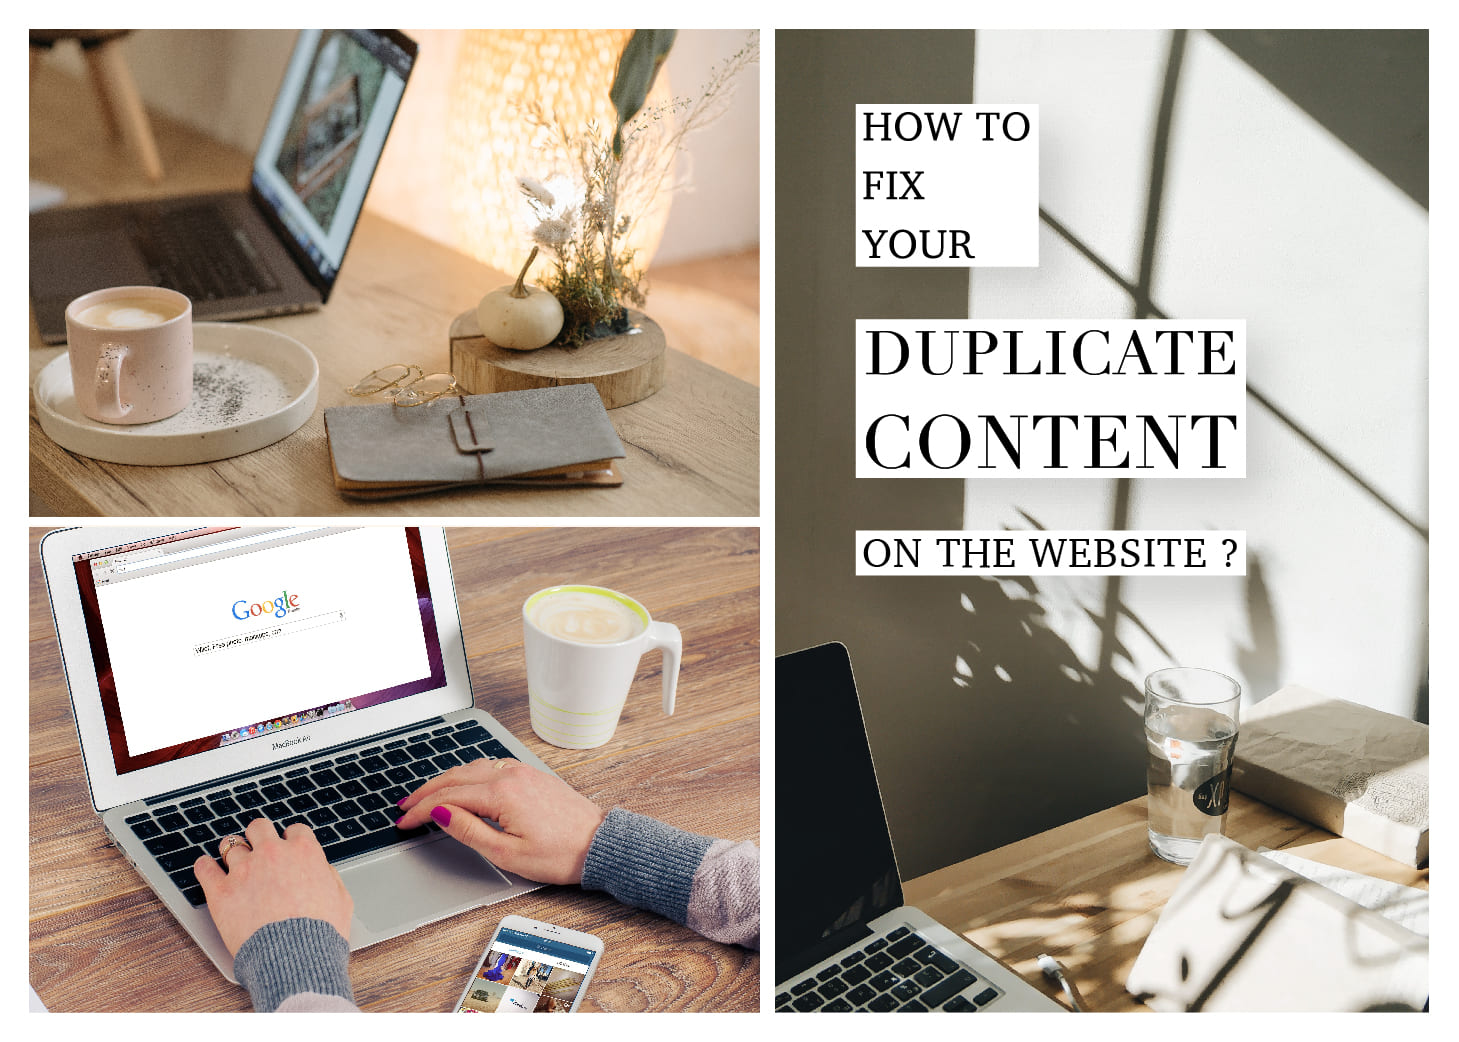 SEO 指南針|「重複內容」(Duplicate Content)大扣分!3個網站總是衝不到前面的原因 How to fix your Duplicate Content on the website?